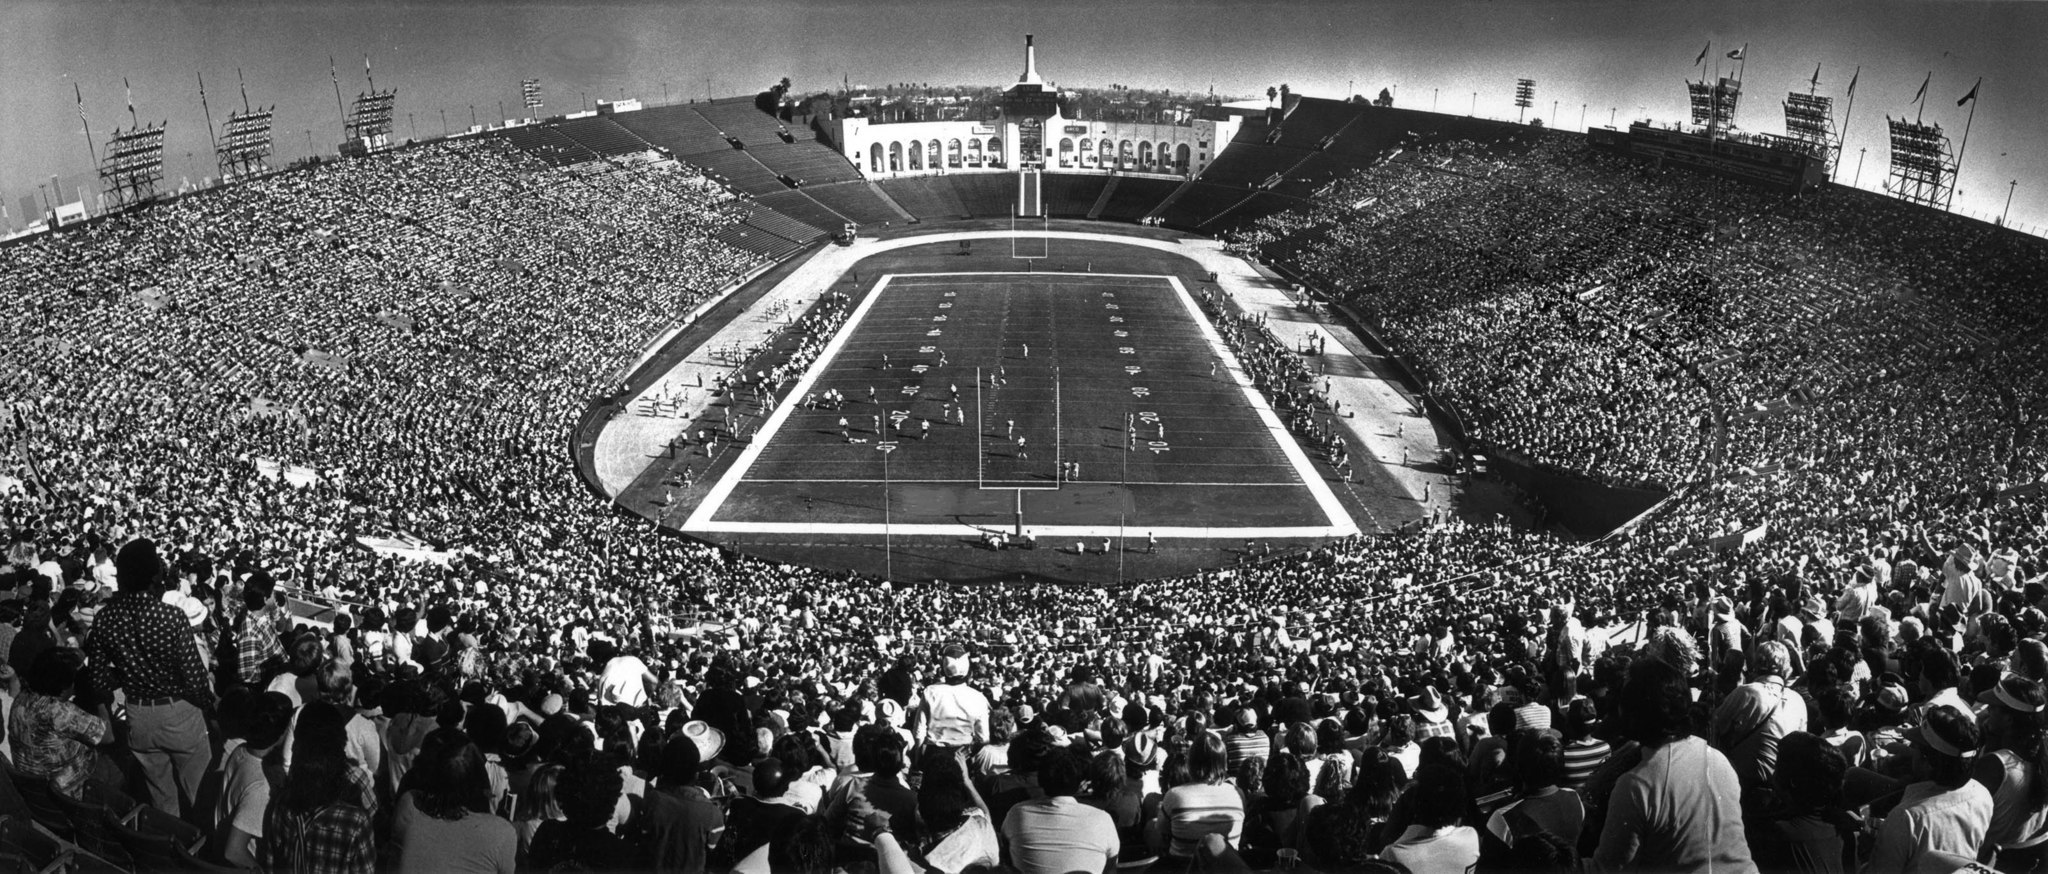 Dec. 16, 1979: The last regular season game played by the Los Angeles Rams at the Memorial Coliseum.